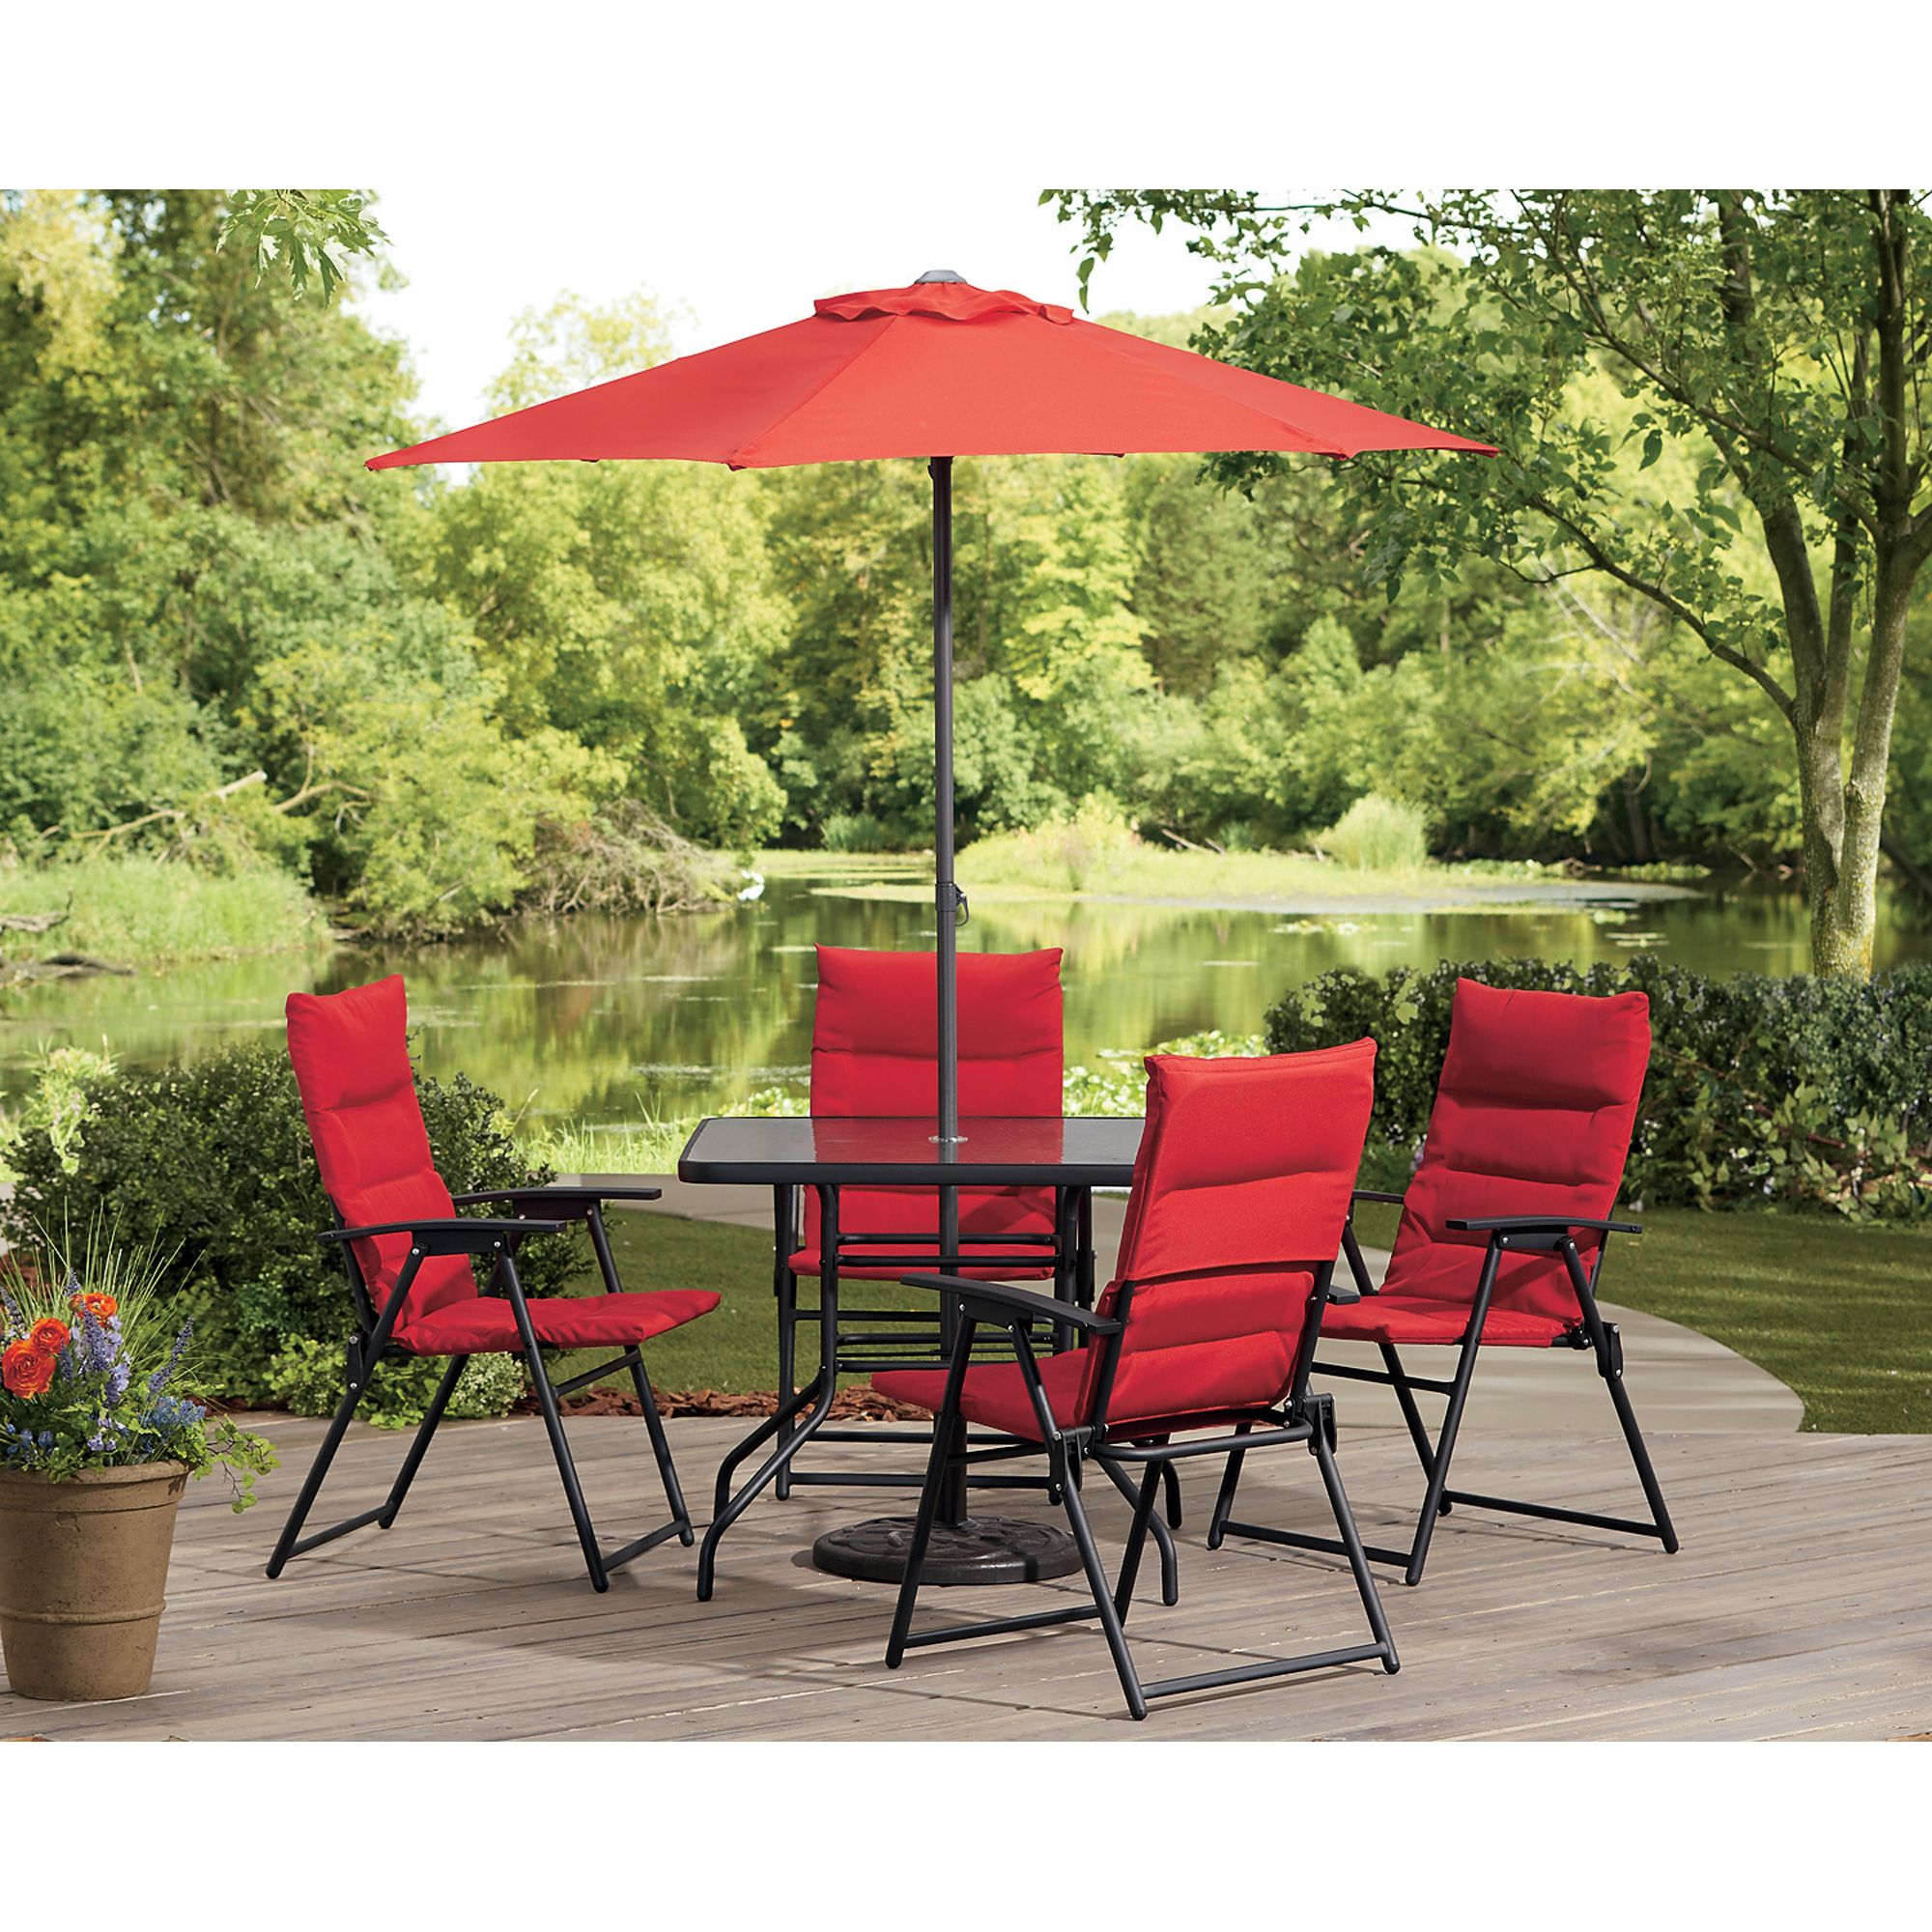 Castlecreek Red Outdoor Patio Furniture Dining Set 6 Pc Includes Folding Chairs